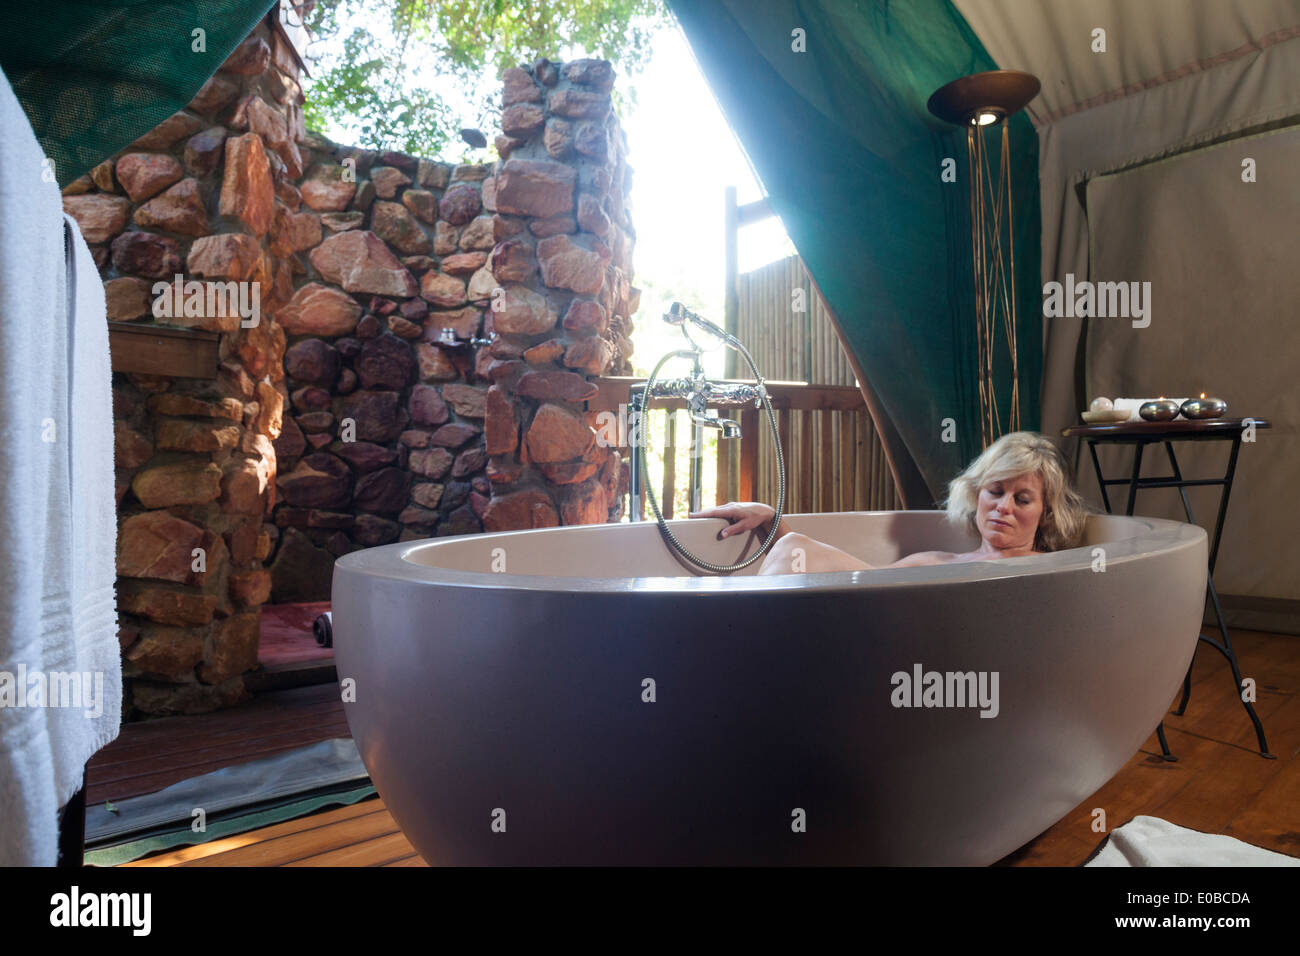 Blond woman naps inside a large oval bathtub in a luxury safari tent, Botlierskop Game Lodge, Mosselbay, South Africa - Stock Image